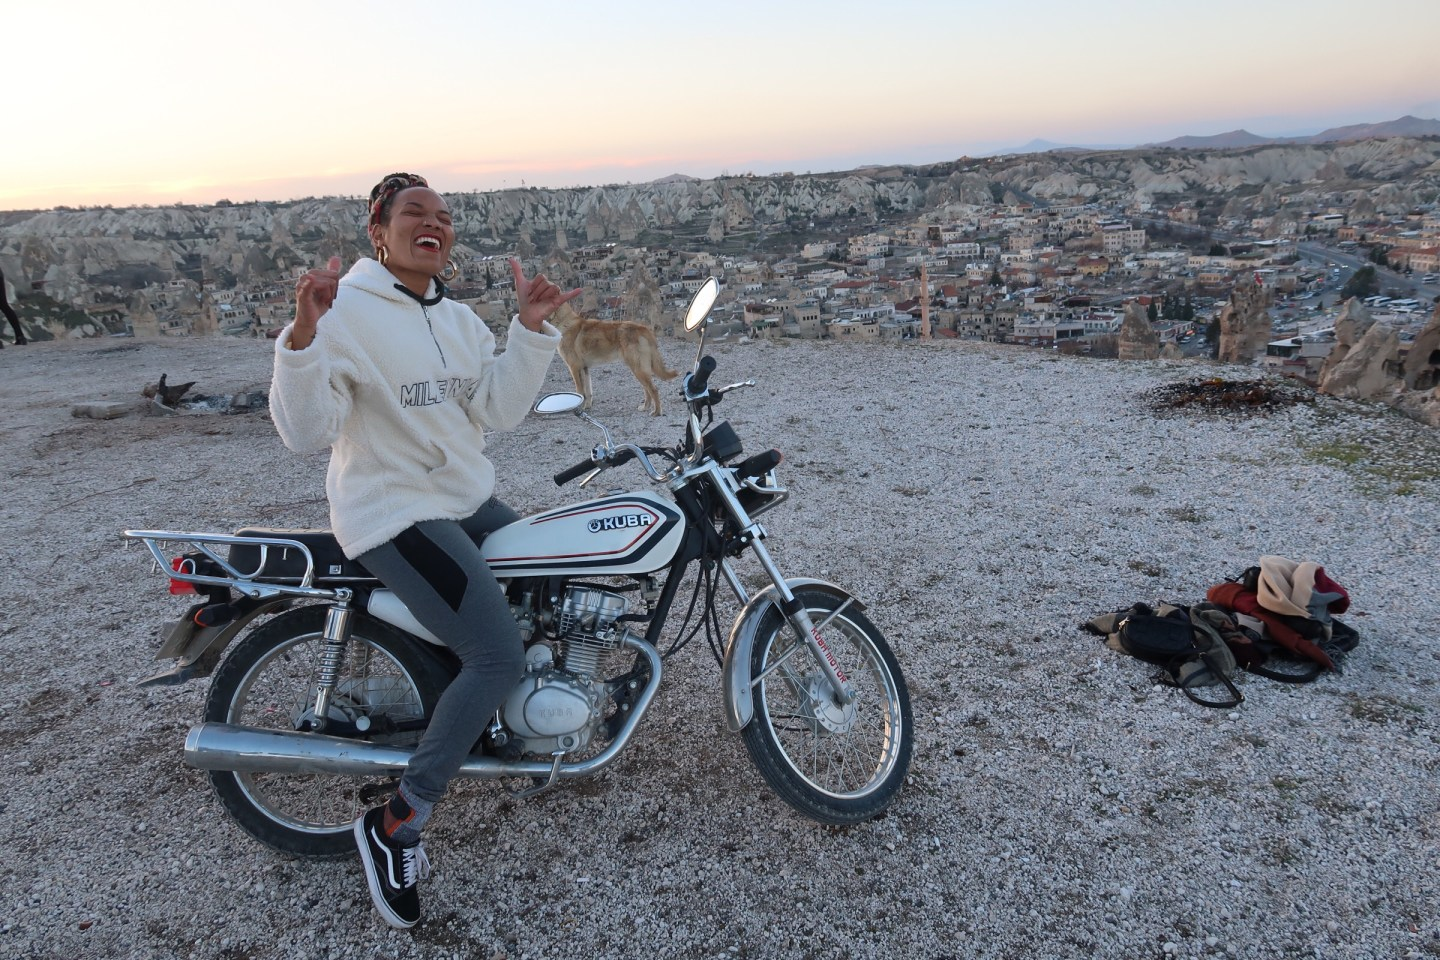 illustrated by Sade - woman riding a motorcycle on top of sunset view point in Goreme Cappadocia